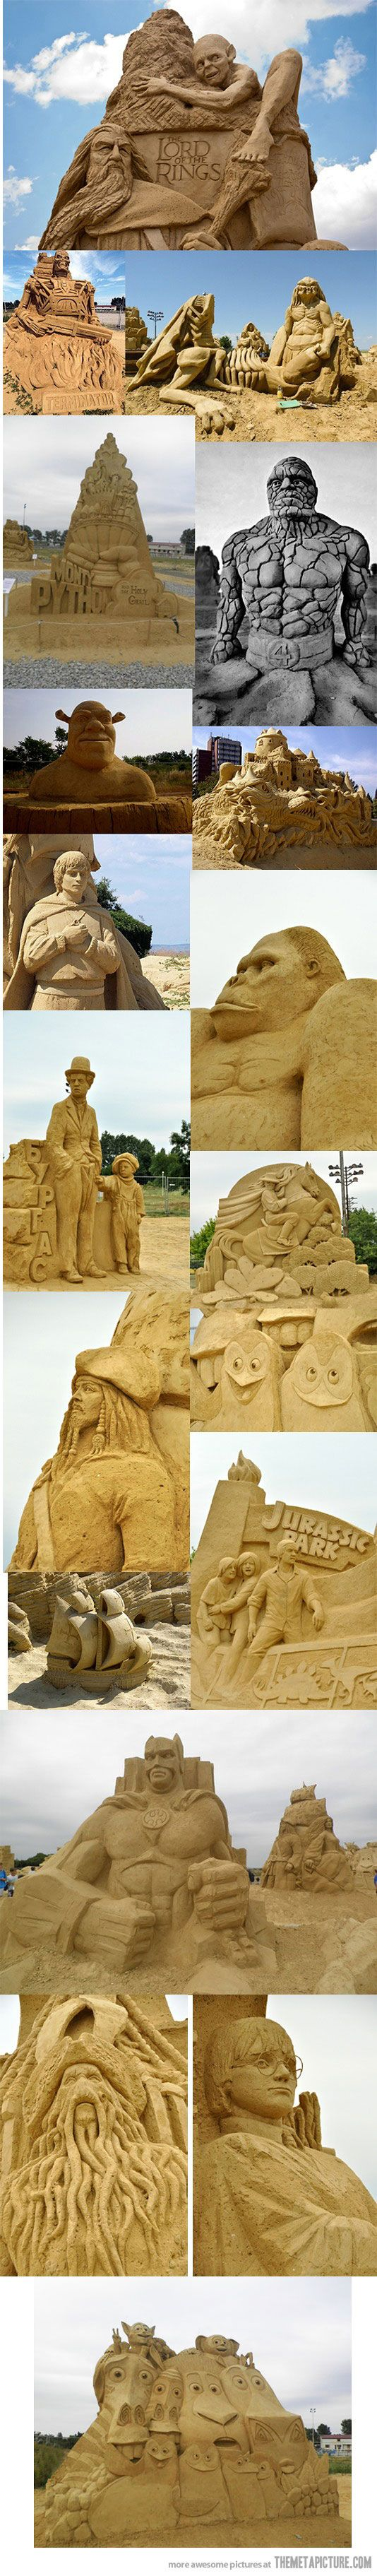 WOW look at these sand sculptures!